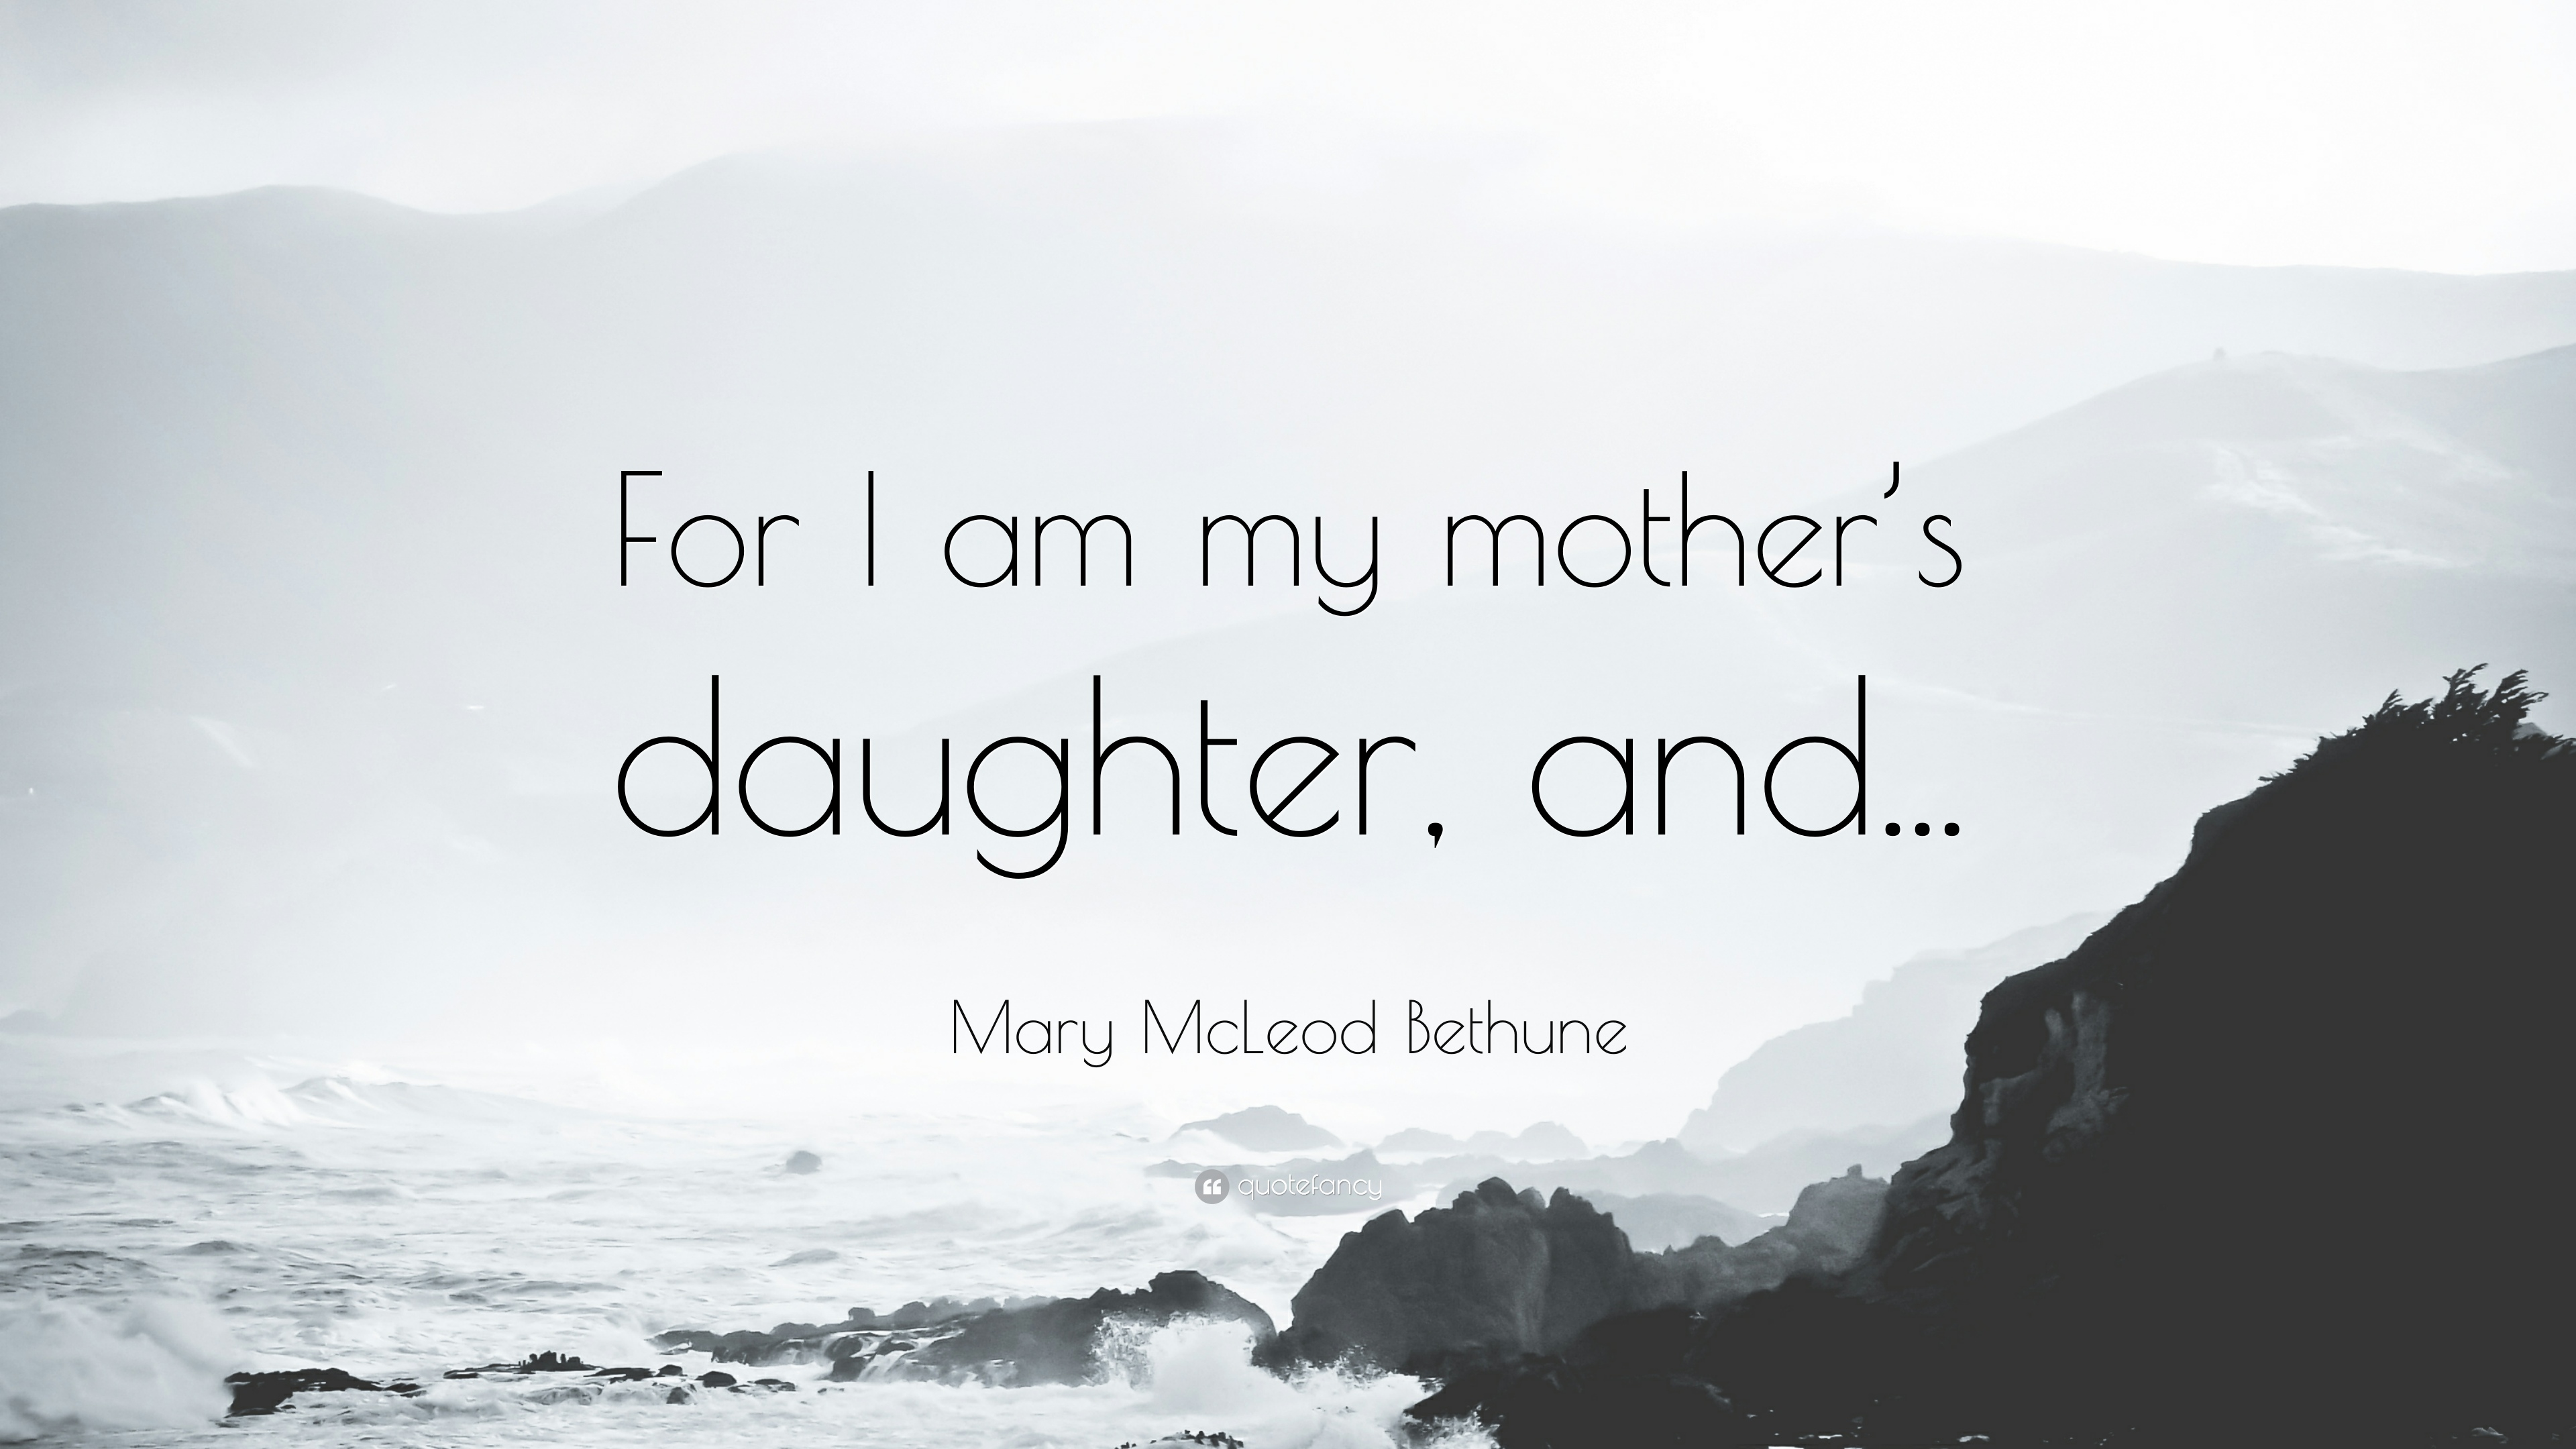 Mary Mcleod Bethune Quote For I Am My Mothers Daughter And